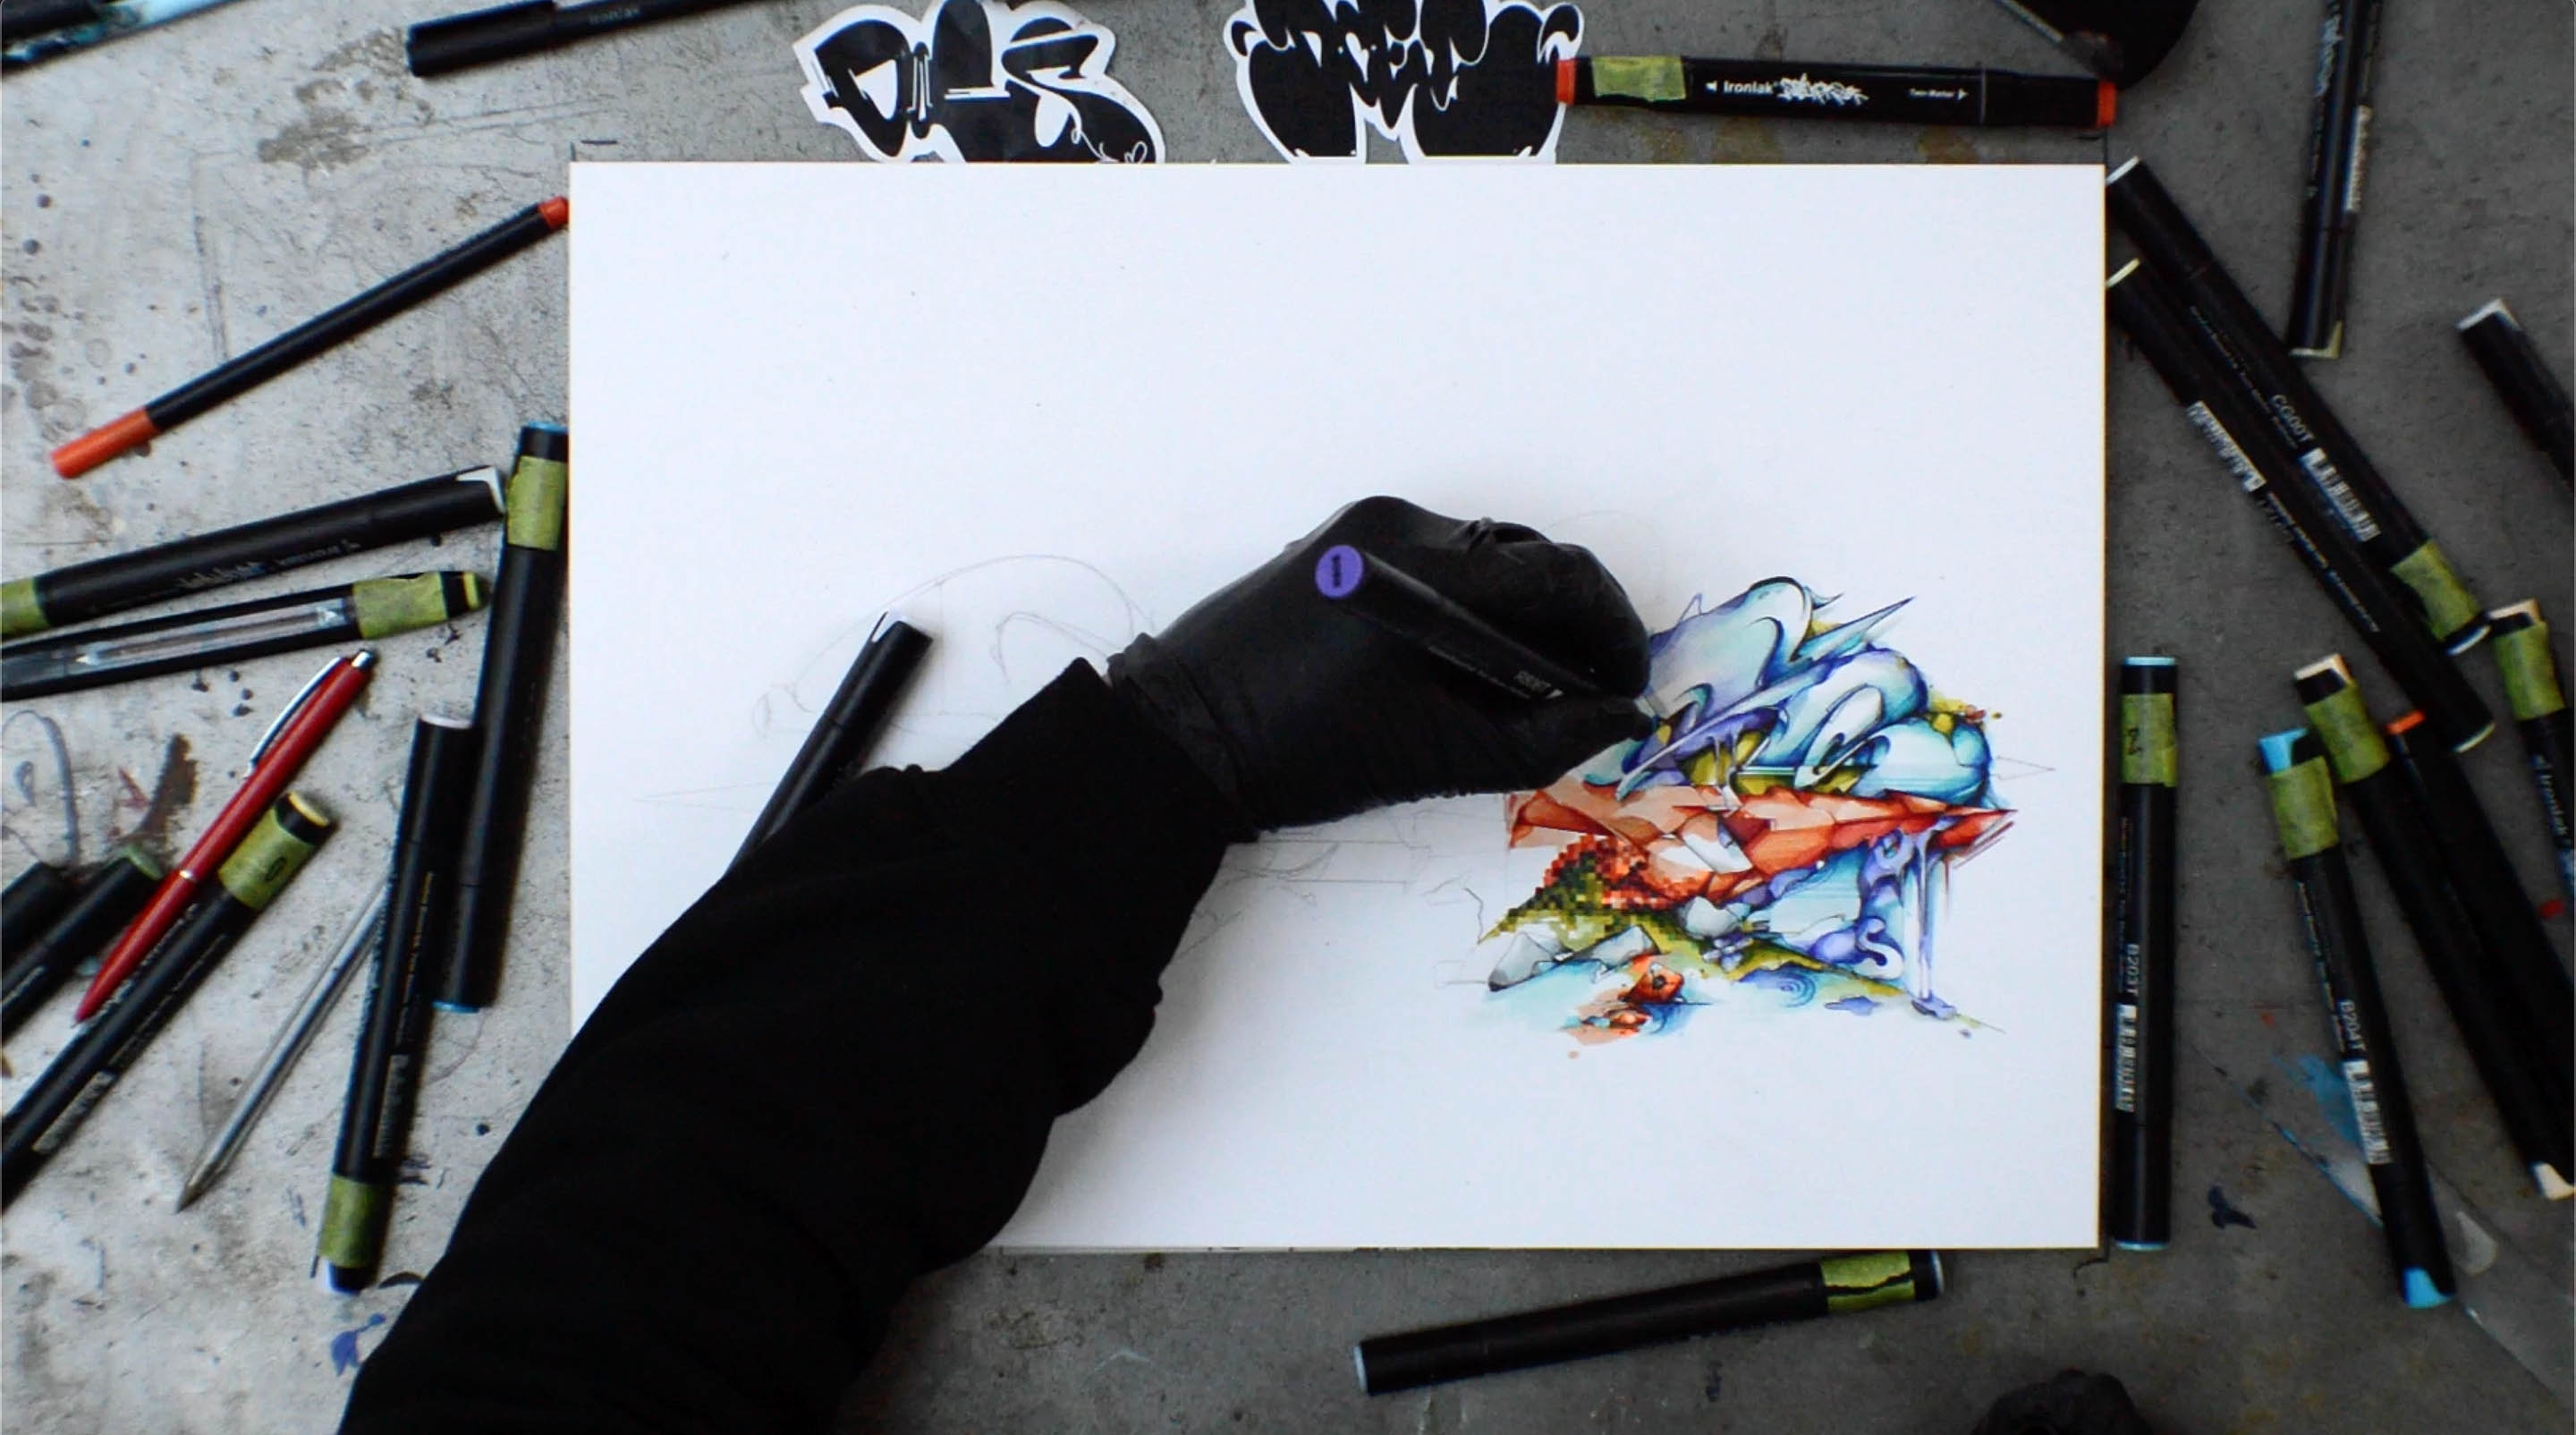 A work by Does - timelapse